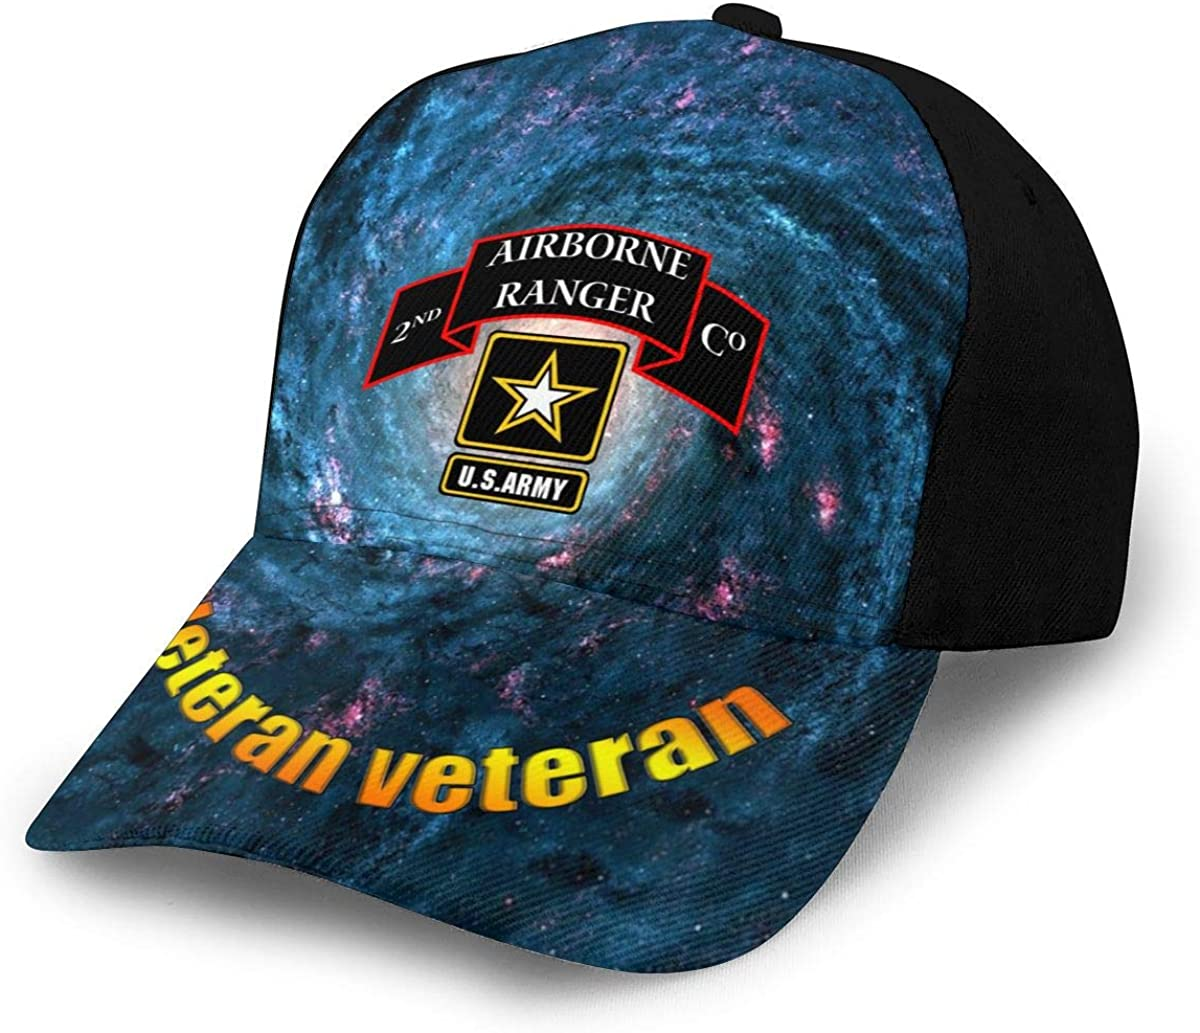 2nd Battalion of The 75th Battalion of The Army Classic Adult Snapback Caps Printing Duck Tongue Baseball Hats Unisex Caps